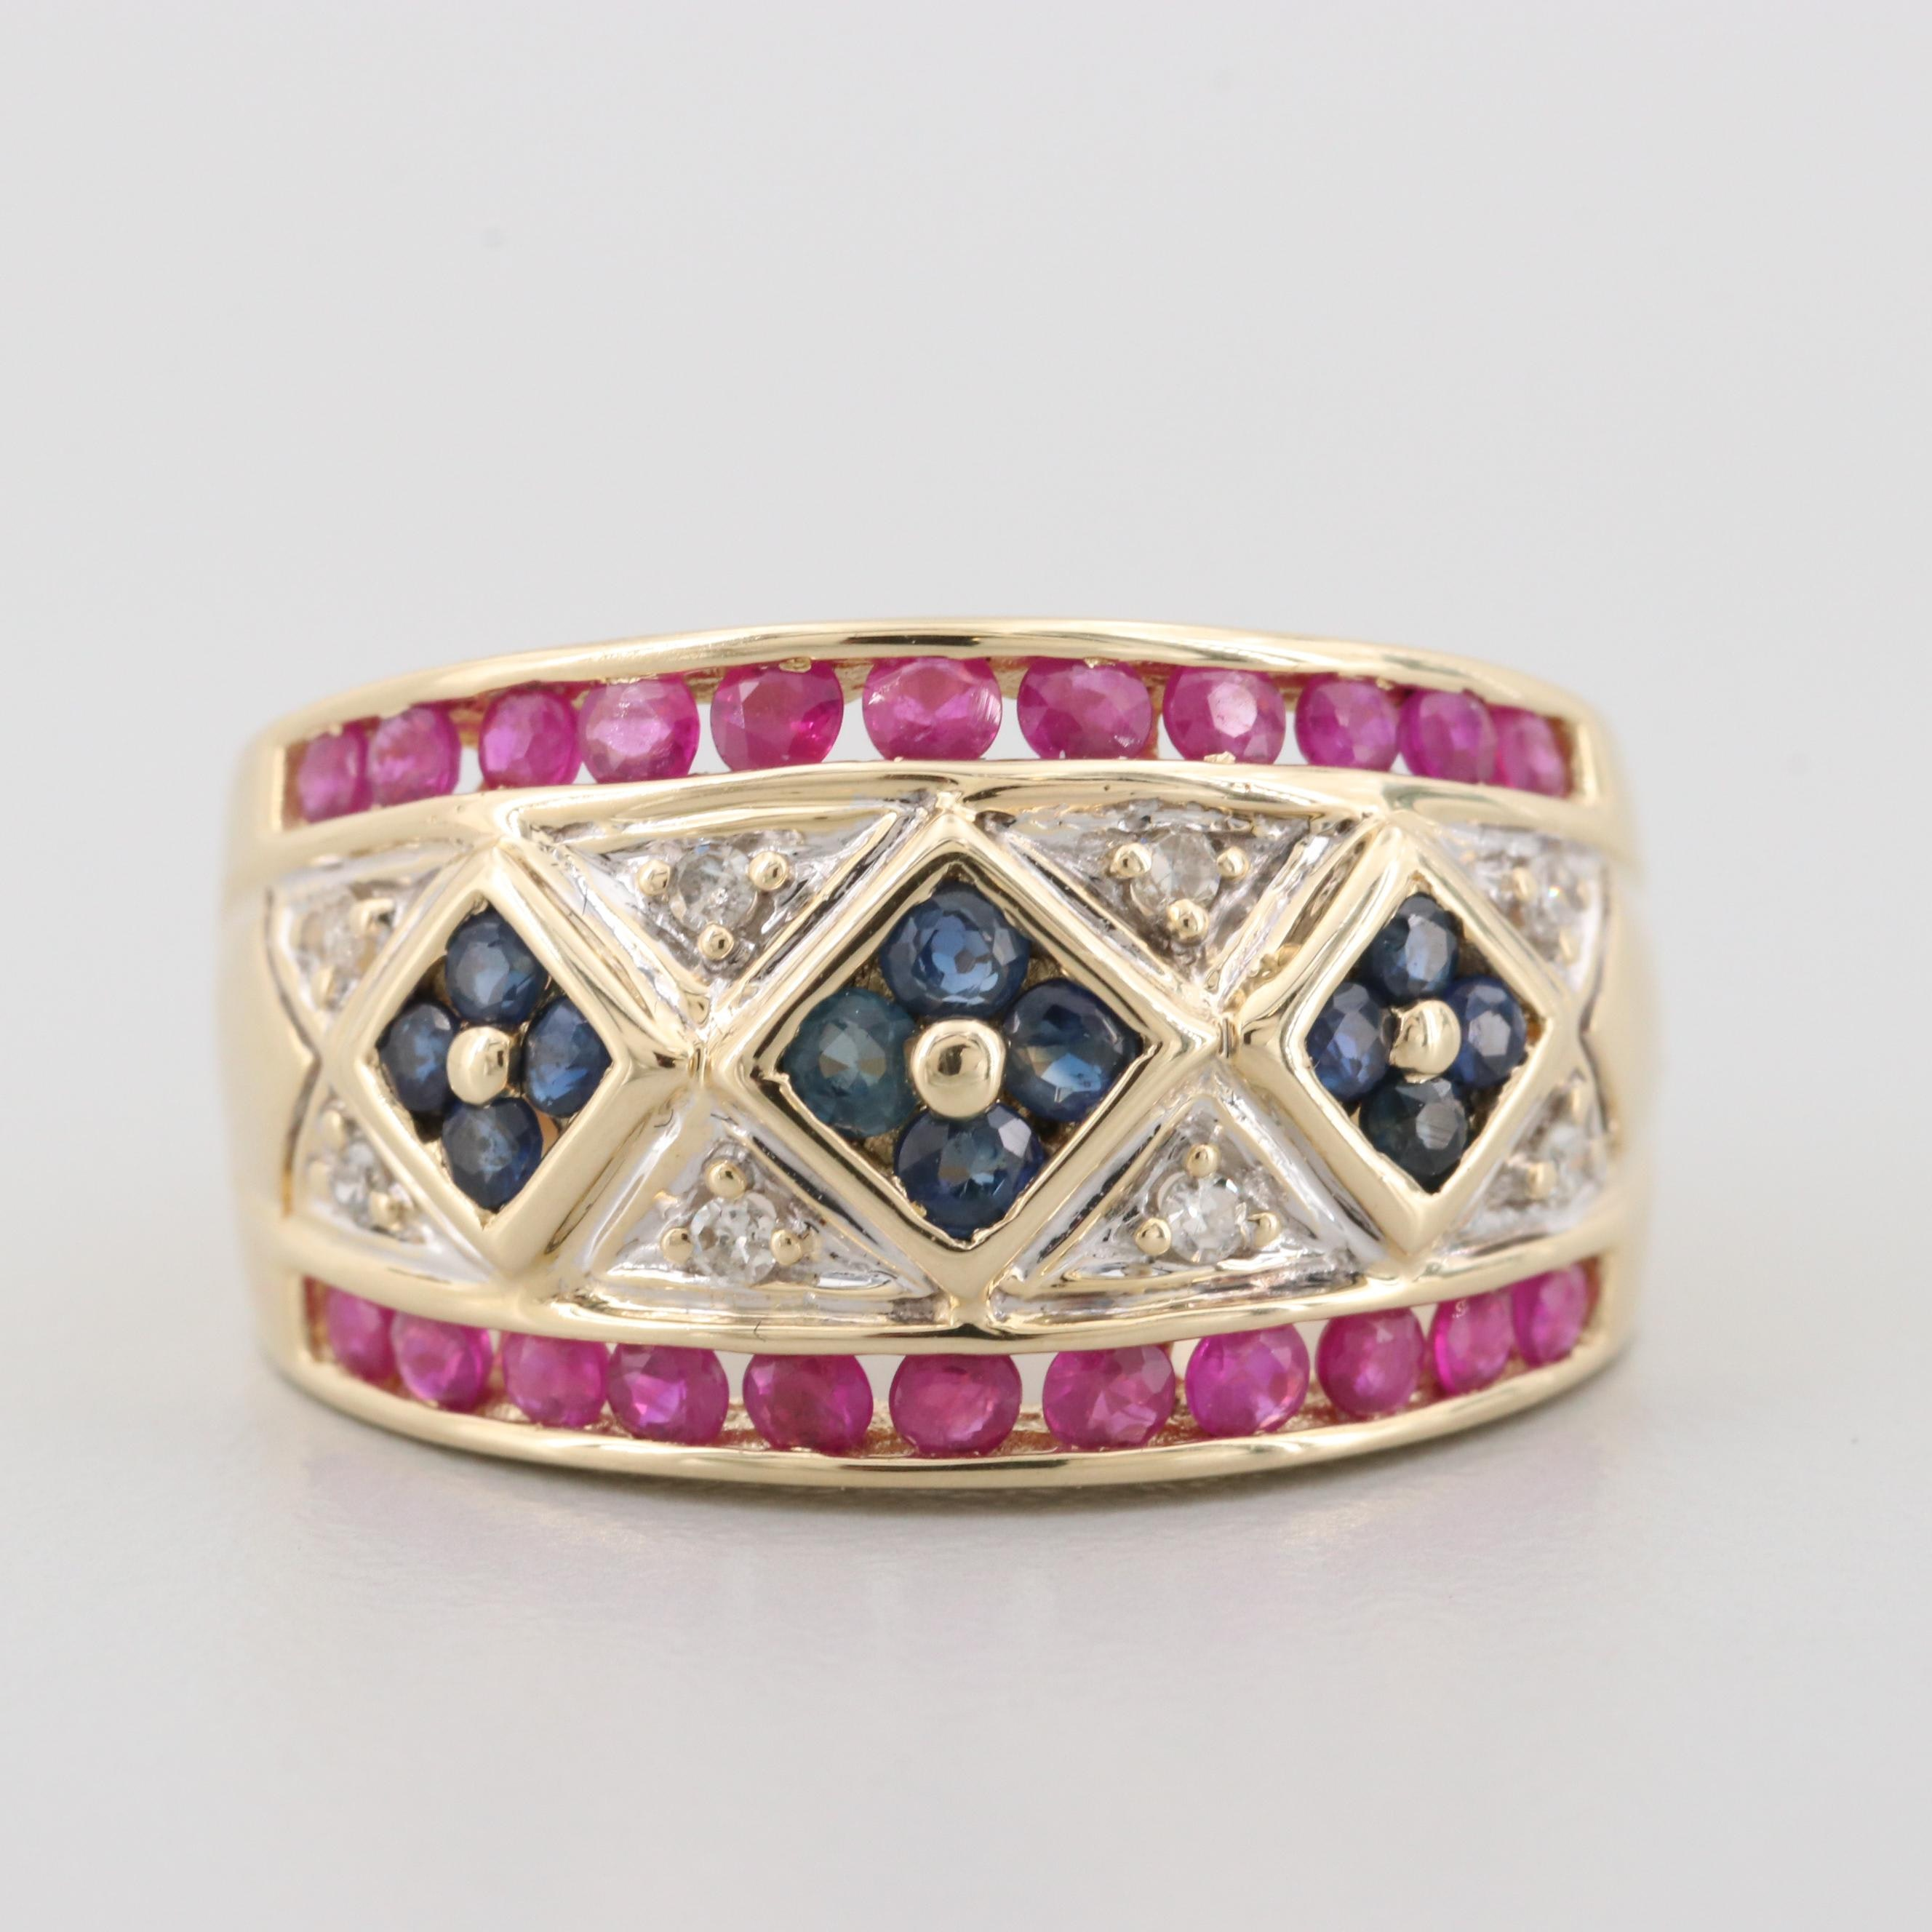 14K Yellow Gold Diamond, Ruby, and Blue Sapphire Ring